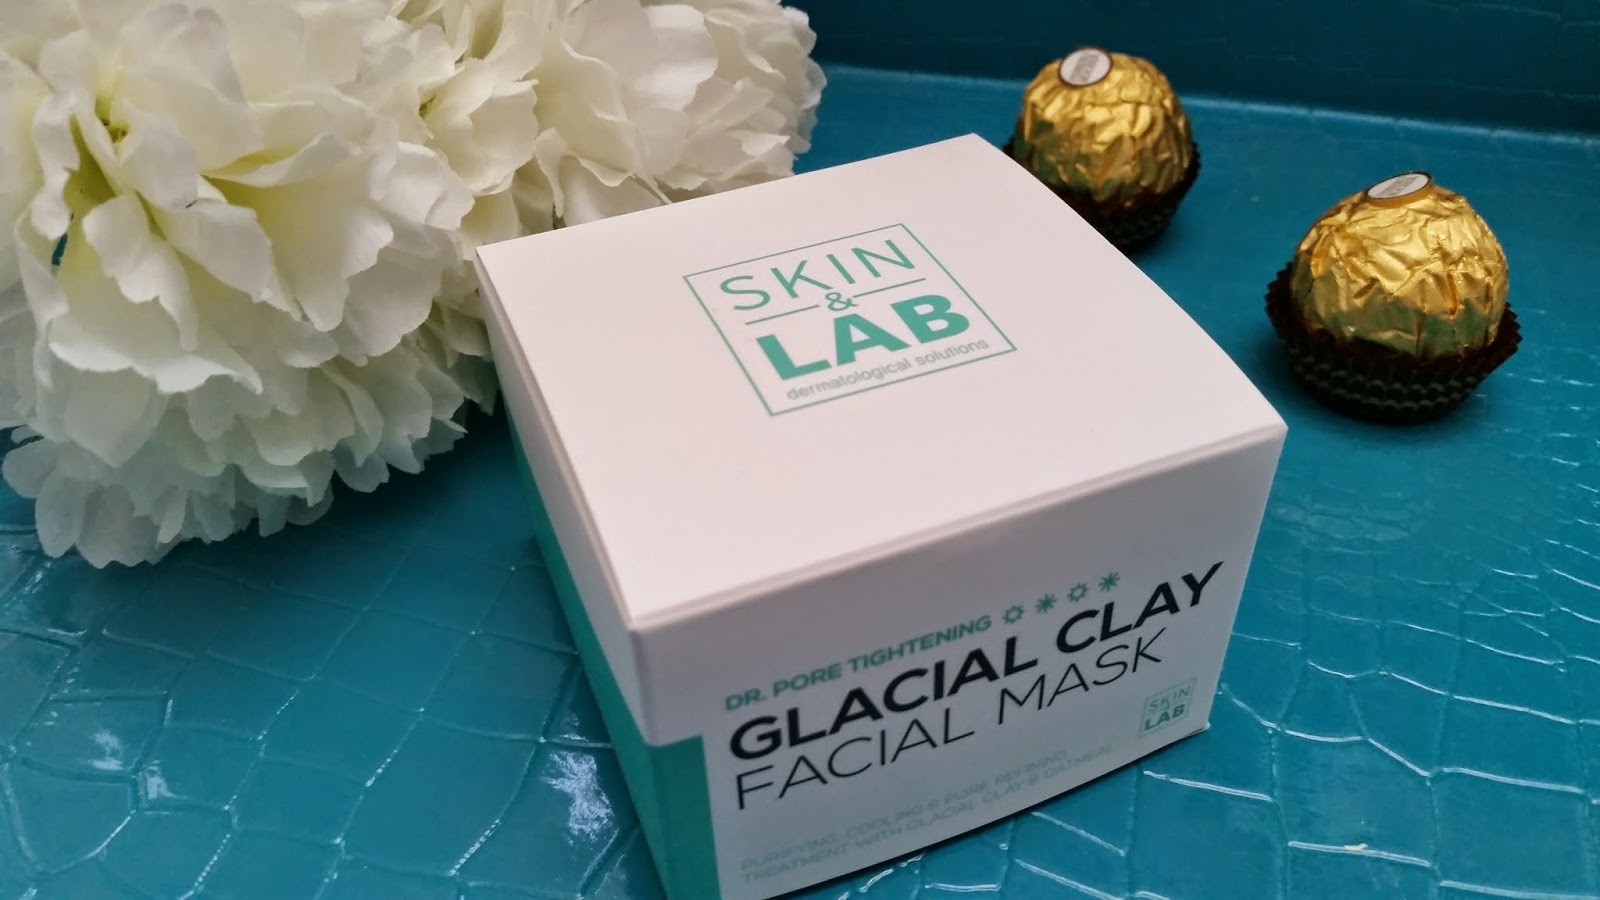 Skin&Lab Dr. Pore Tightening: Glacial Clay Facial Mask outer packaging